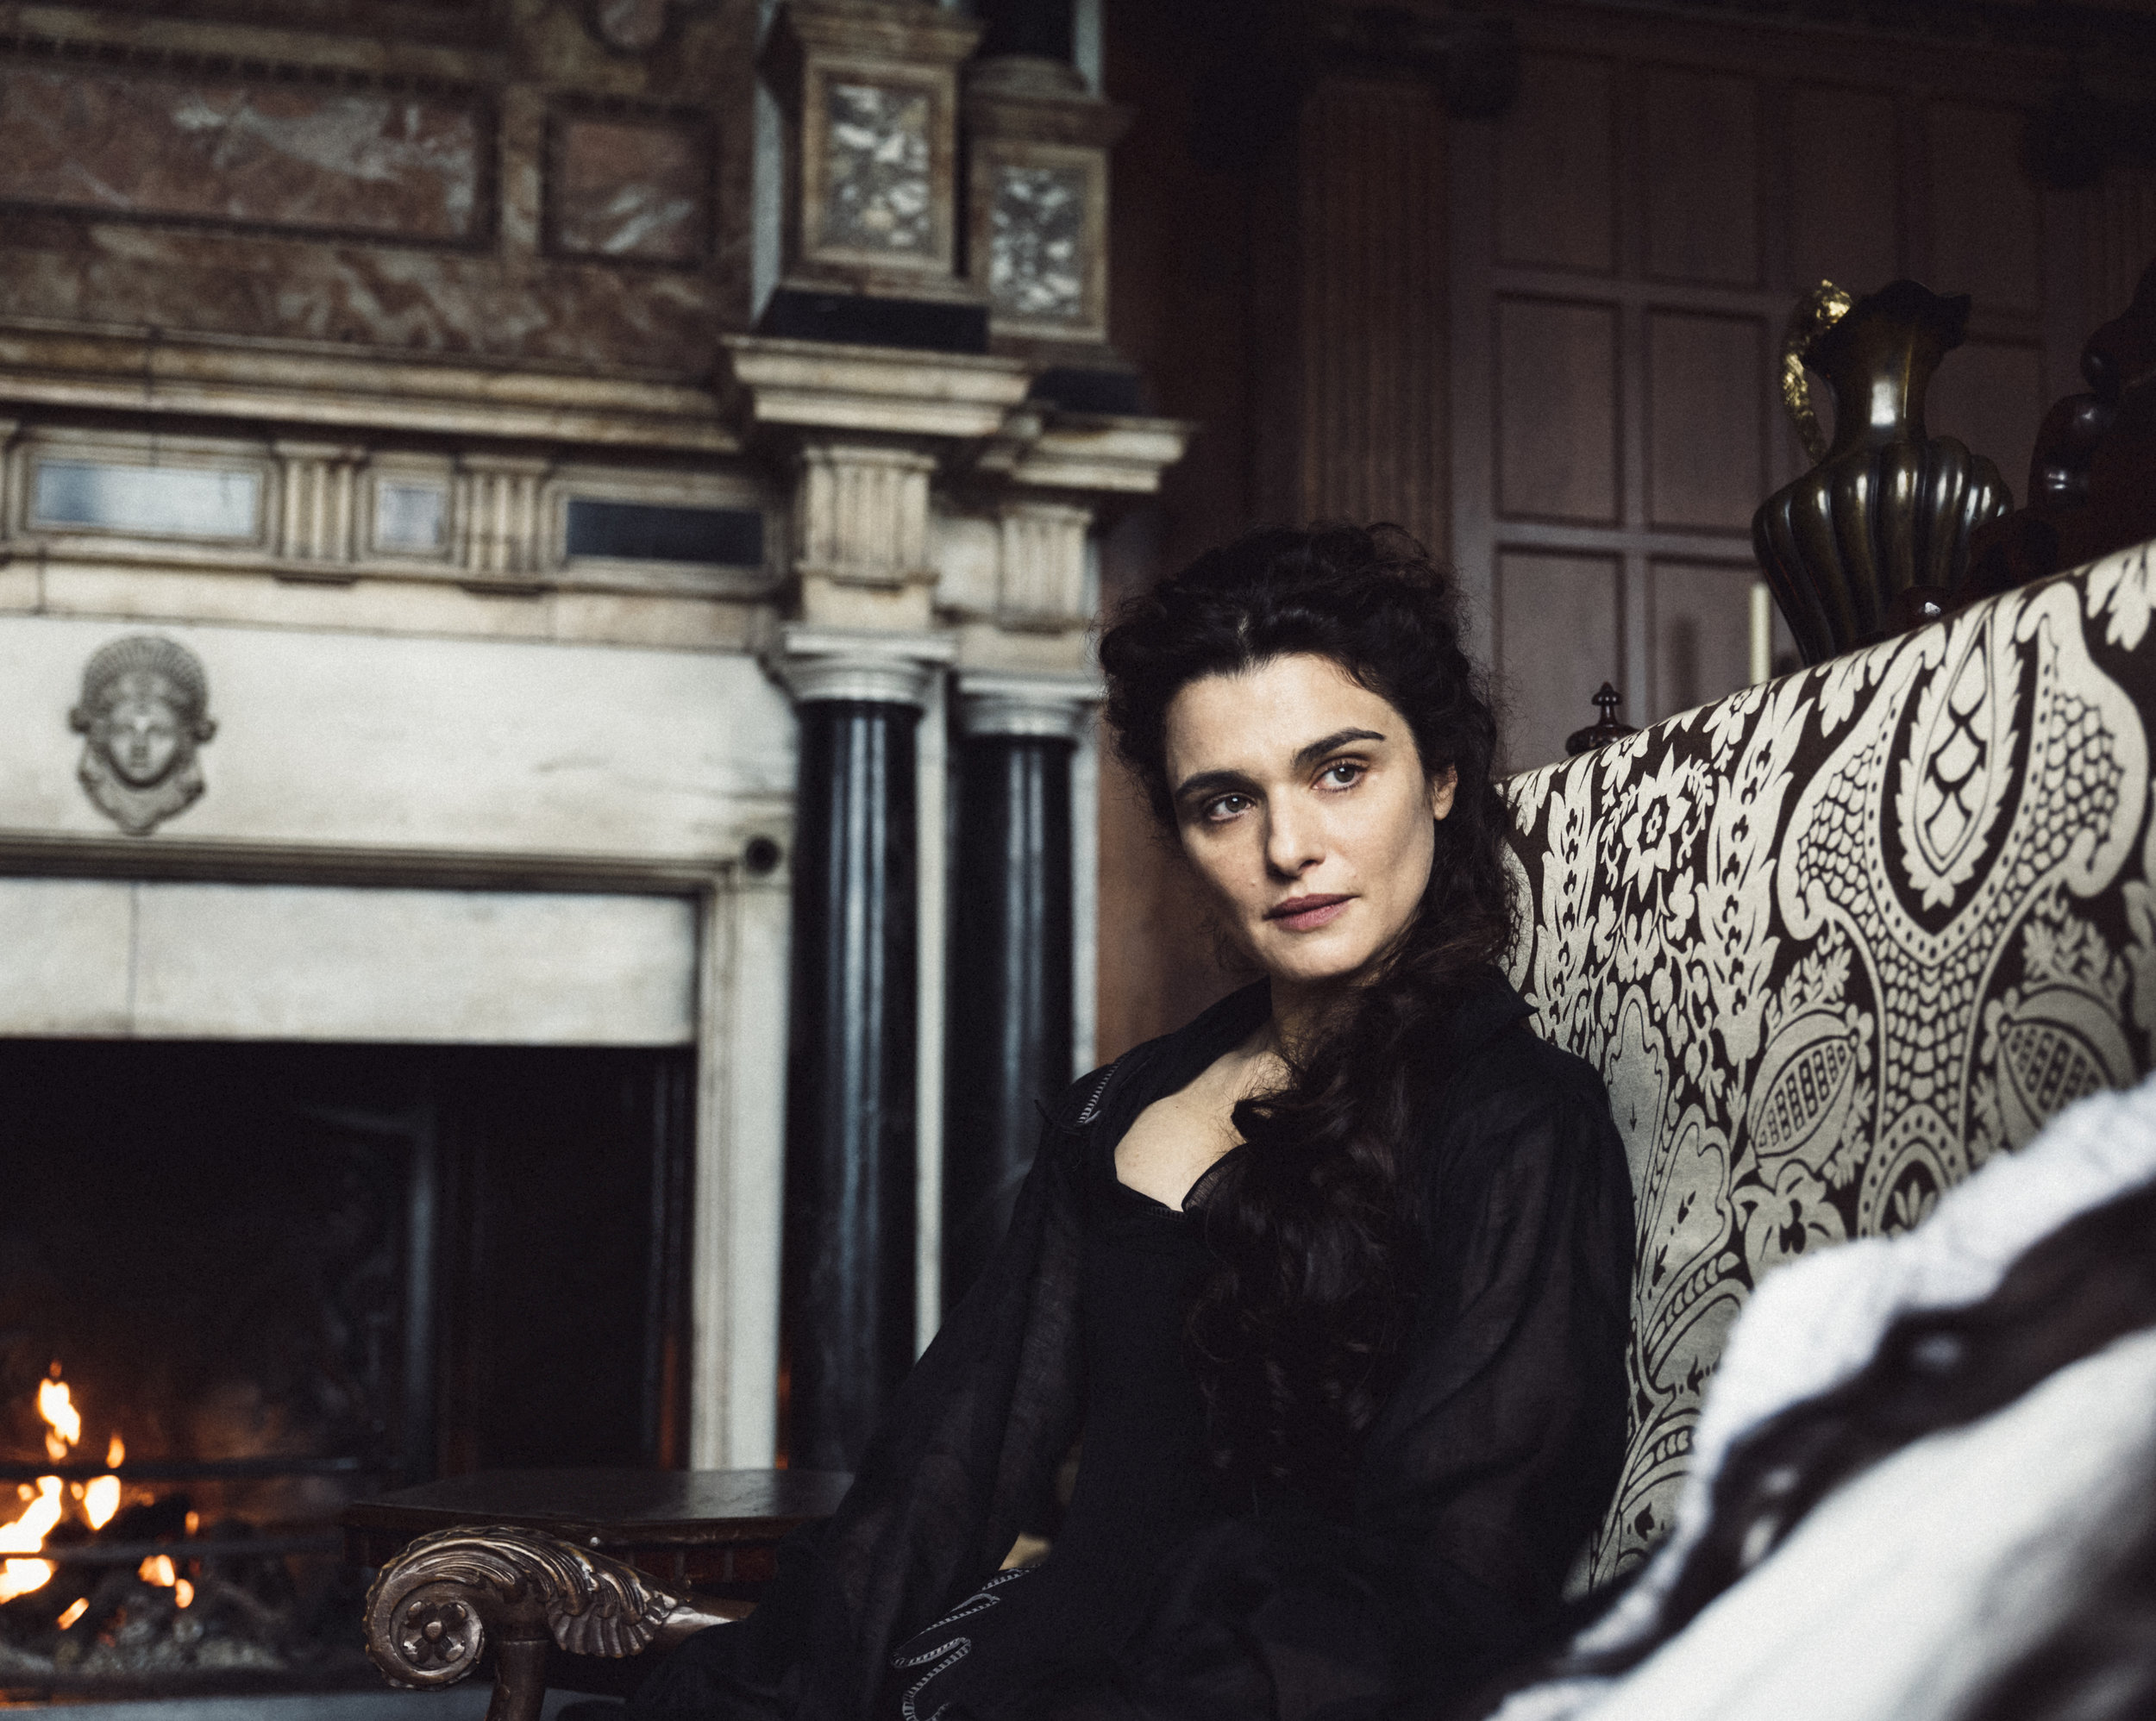 Rachel Weisz as Lady Sarah. Photo by Yorgos Lanthimos. © 2018 Twentieth Century Fox Film Corporation All Rights Reserved